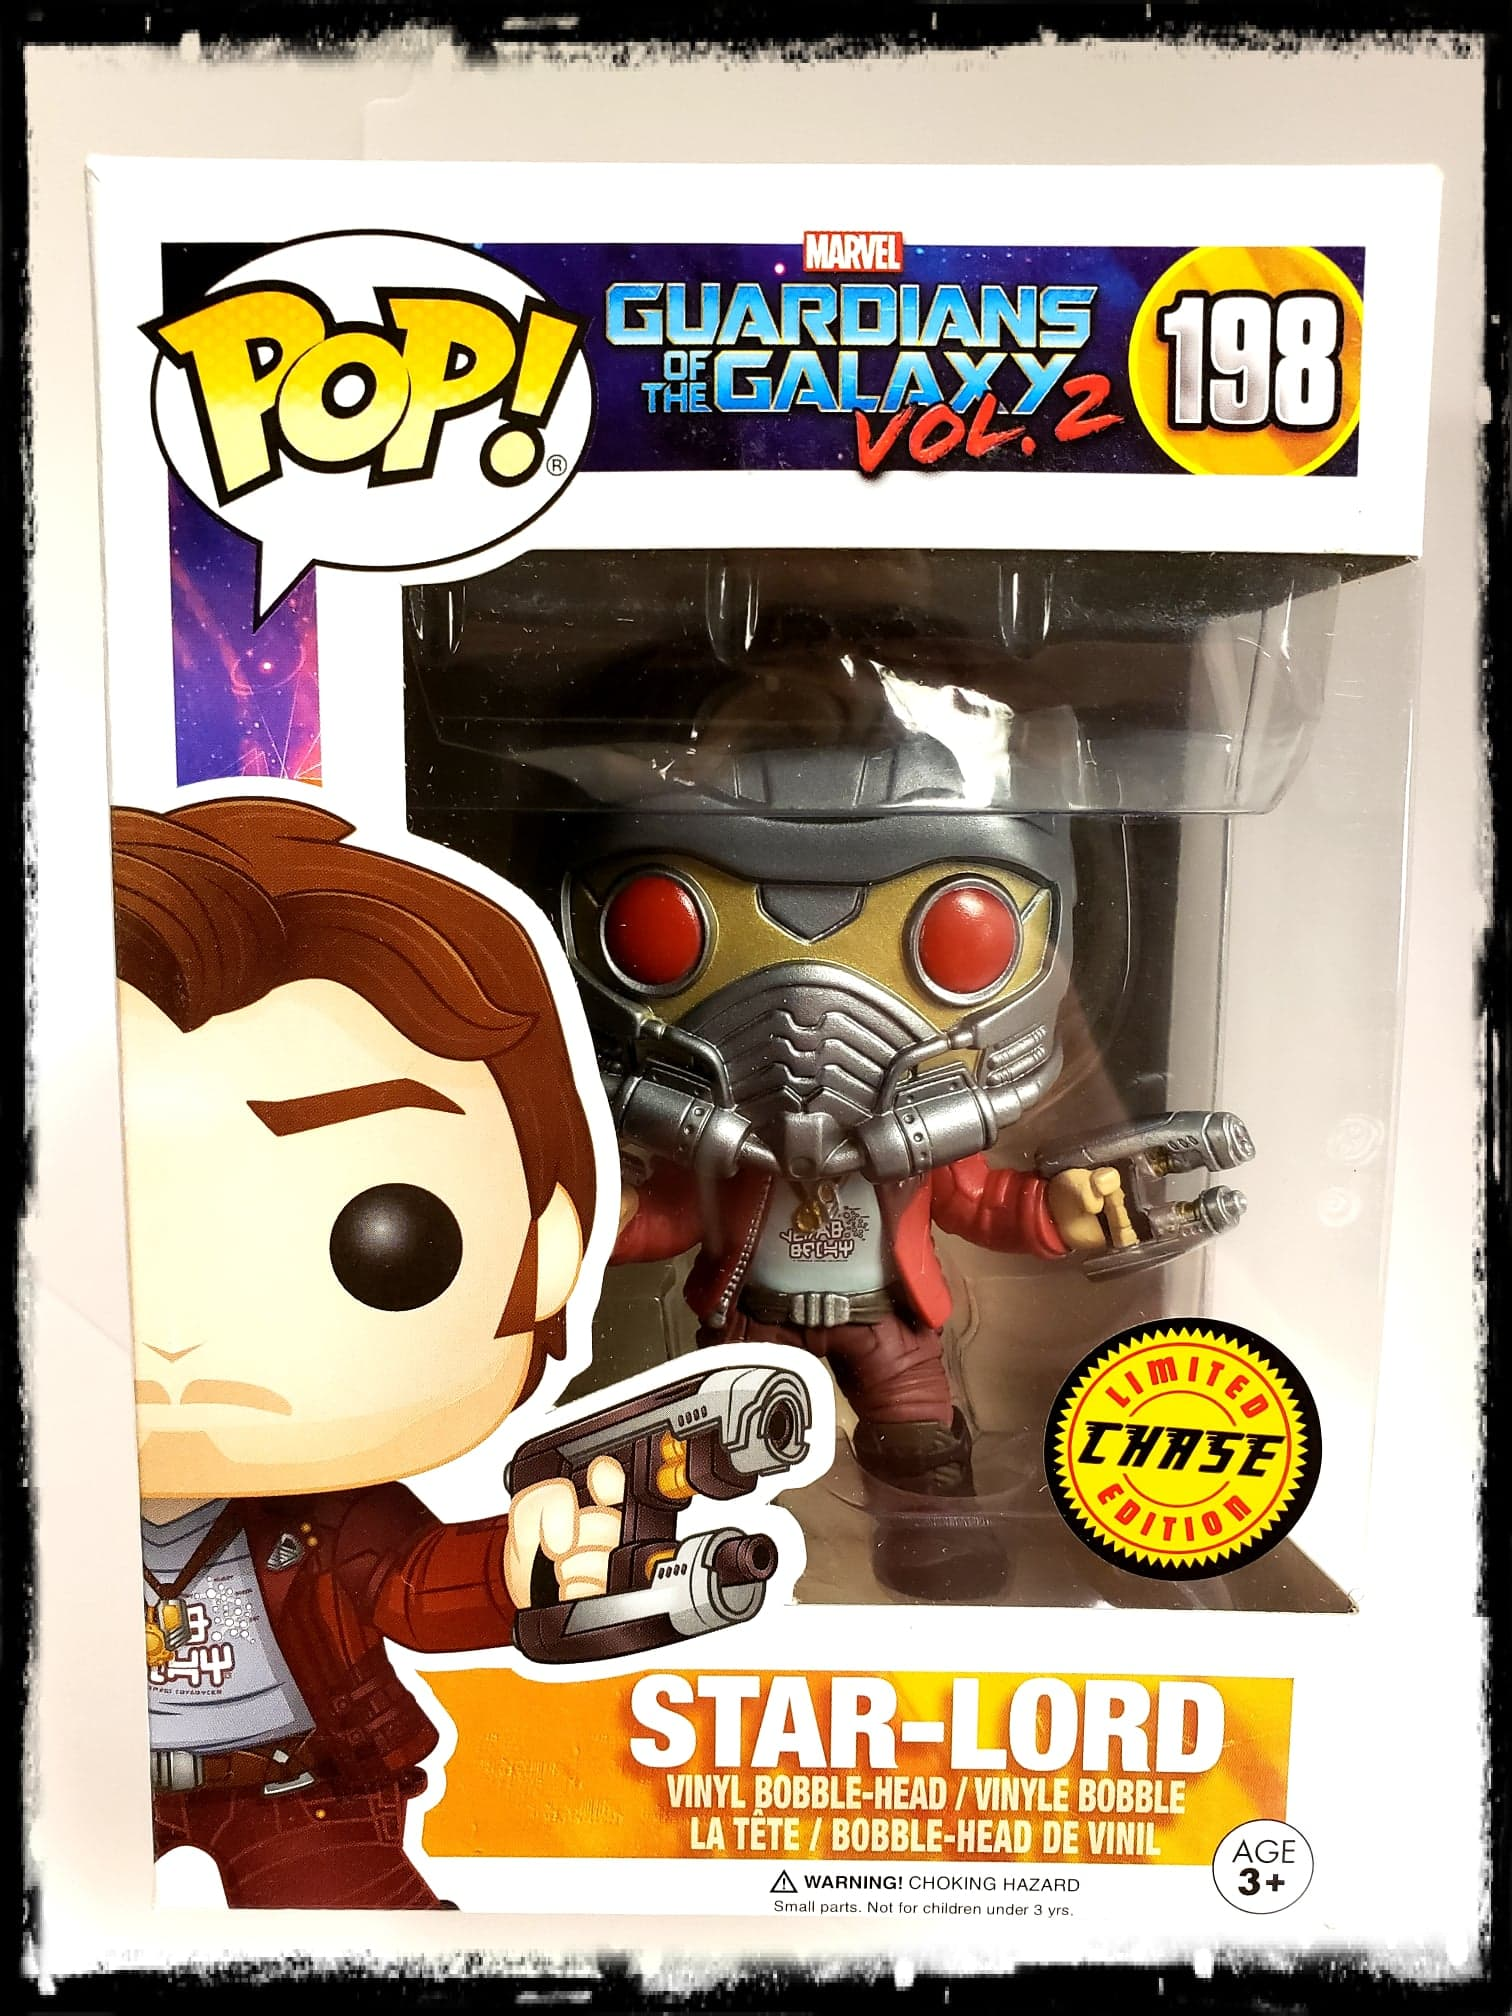 STAR-LORD (VOL. 2 MASKED) #198 - LIMITED CHASE EDITION! - FUNKO POP! (2017)